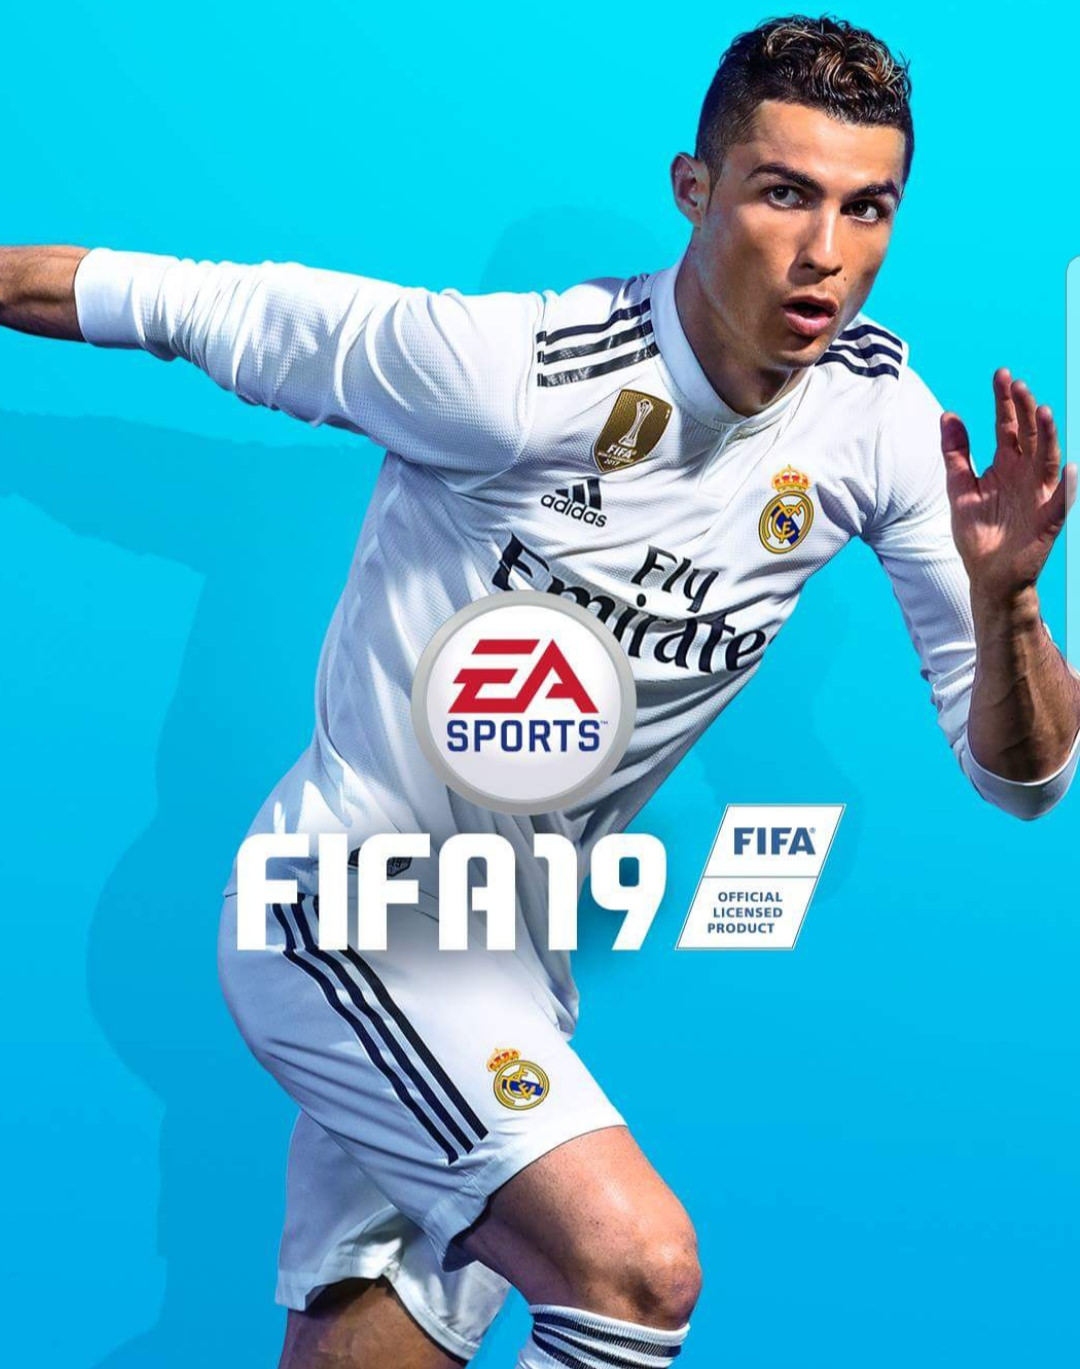 Federation Internationale de Football Association 19 Releases in September and Will Include the Champions League License